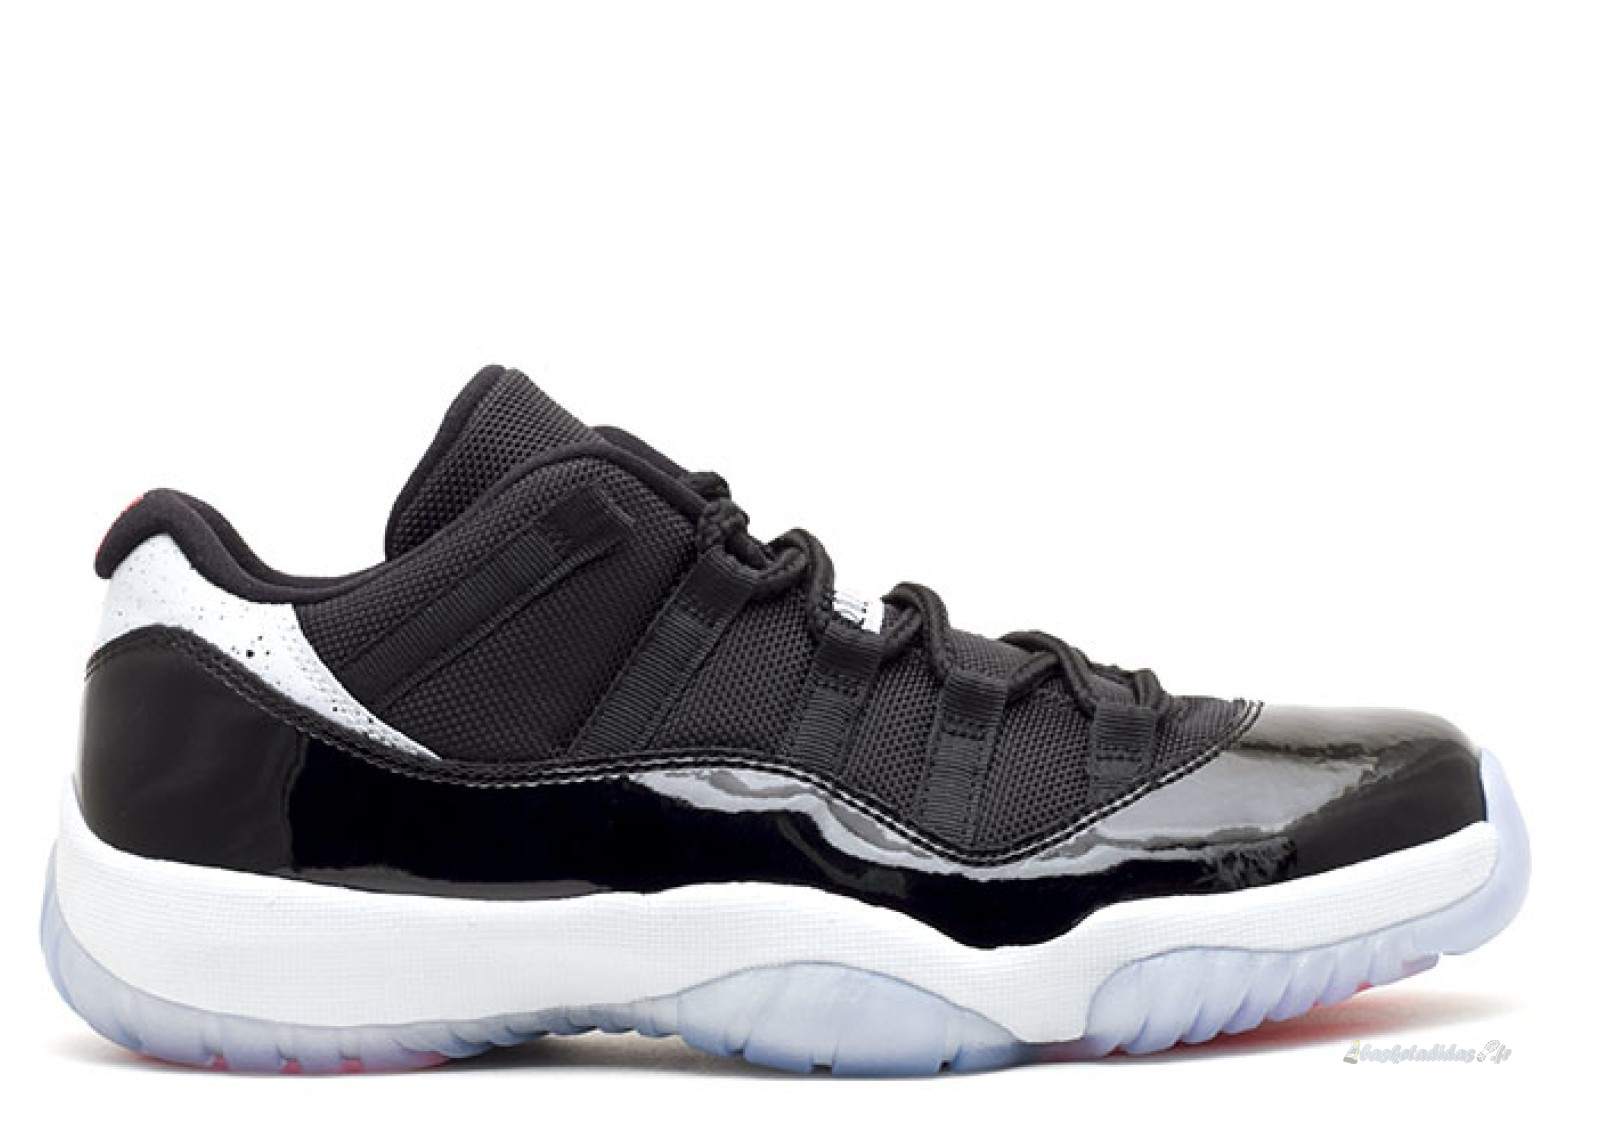 "Chaussure de Basket Air Jordan 11 Retro Low ""Infrared 23"" Noir Blanc (528895-023)"